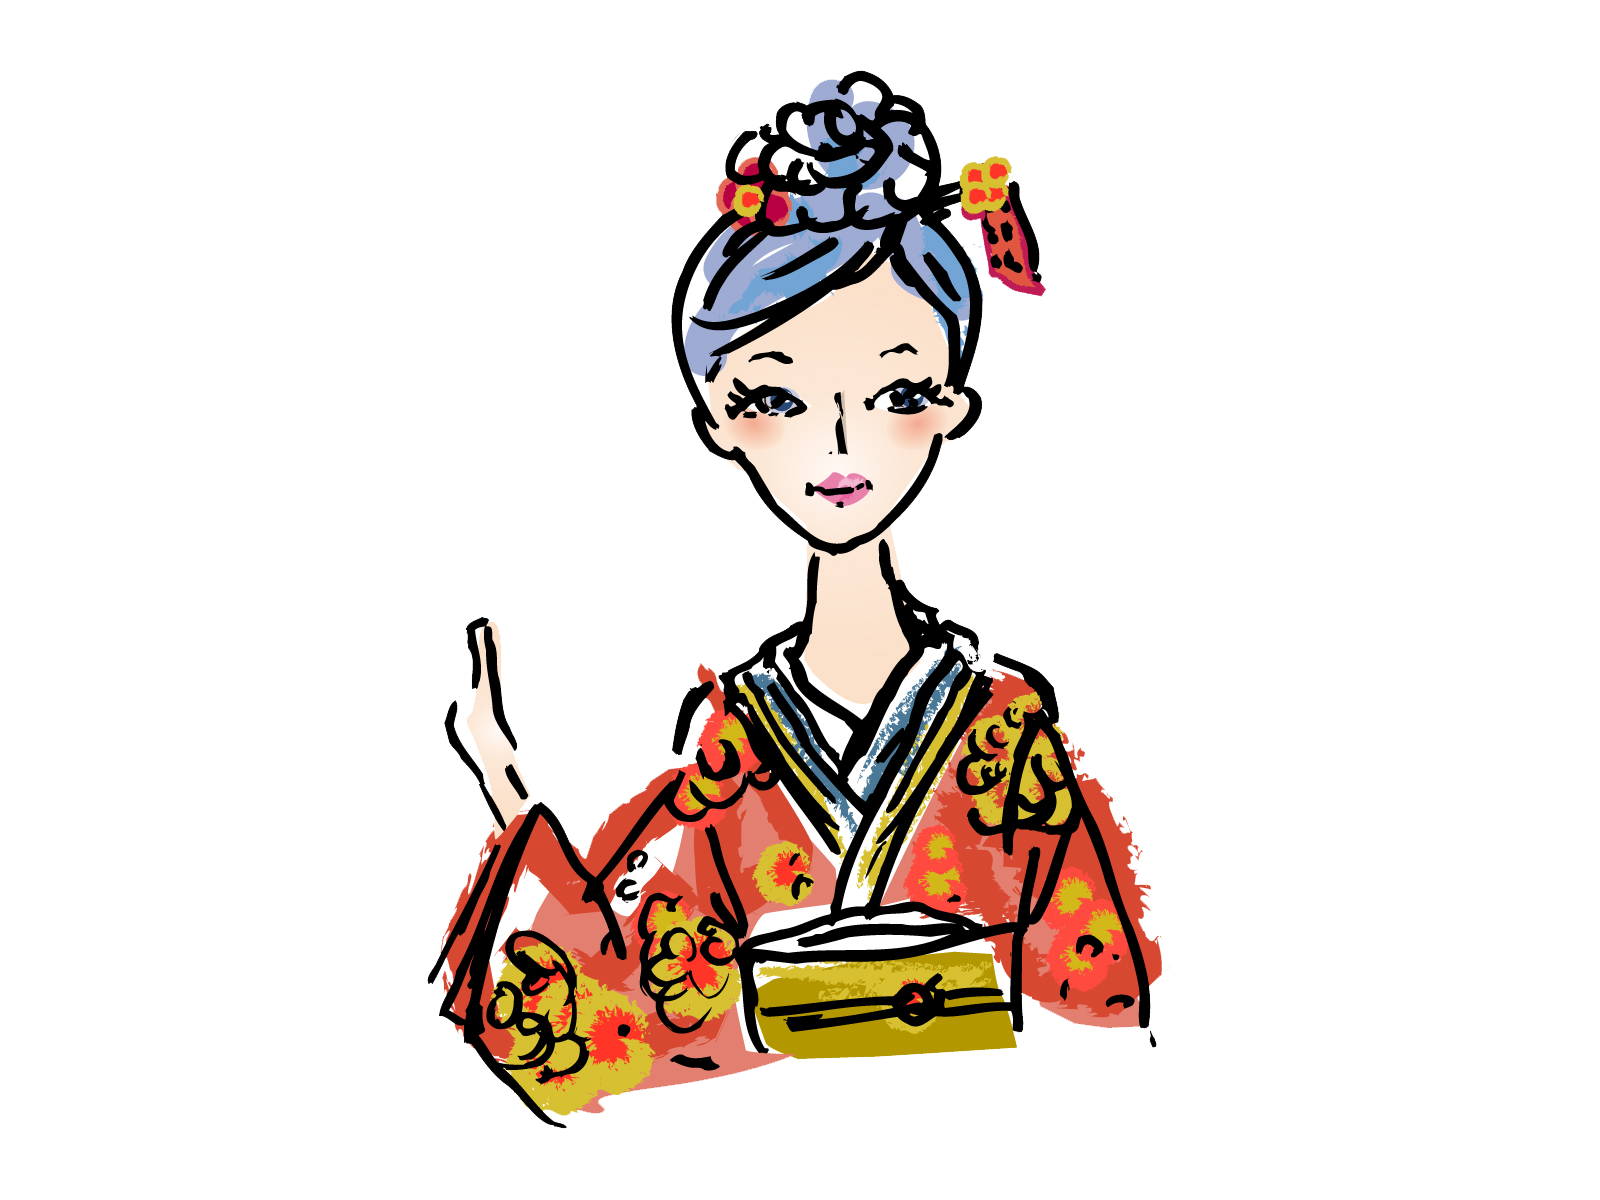 Japanese Clipart Free Download Clip Art -Japanese clipart free download clip art on 5-13